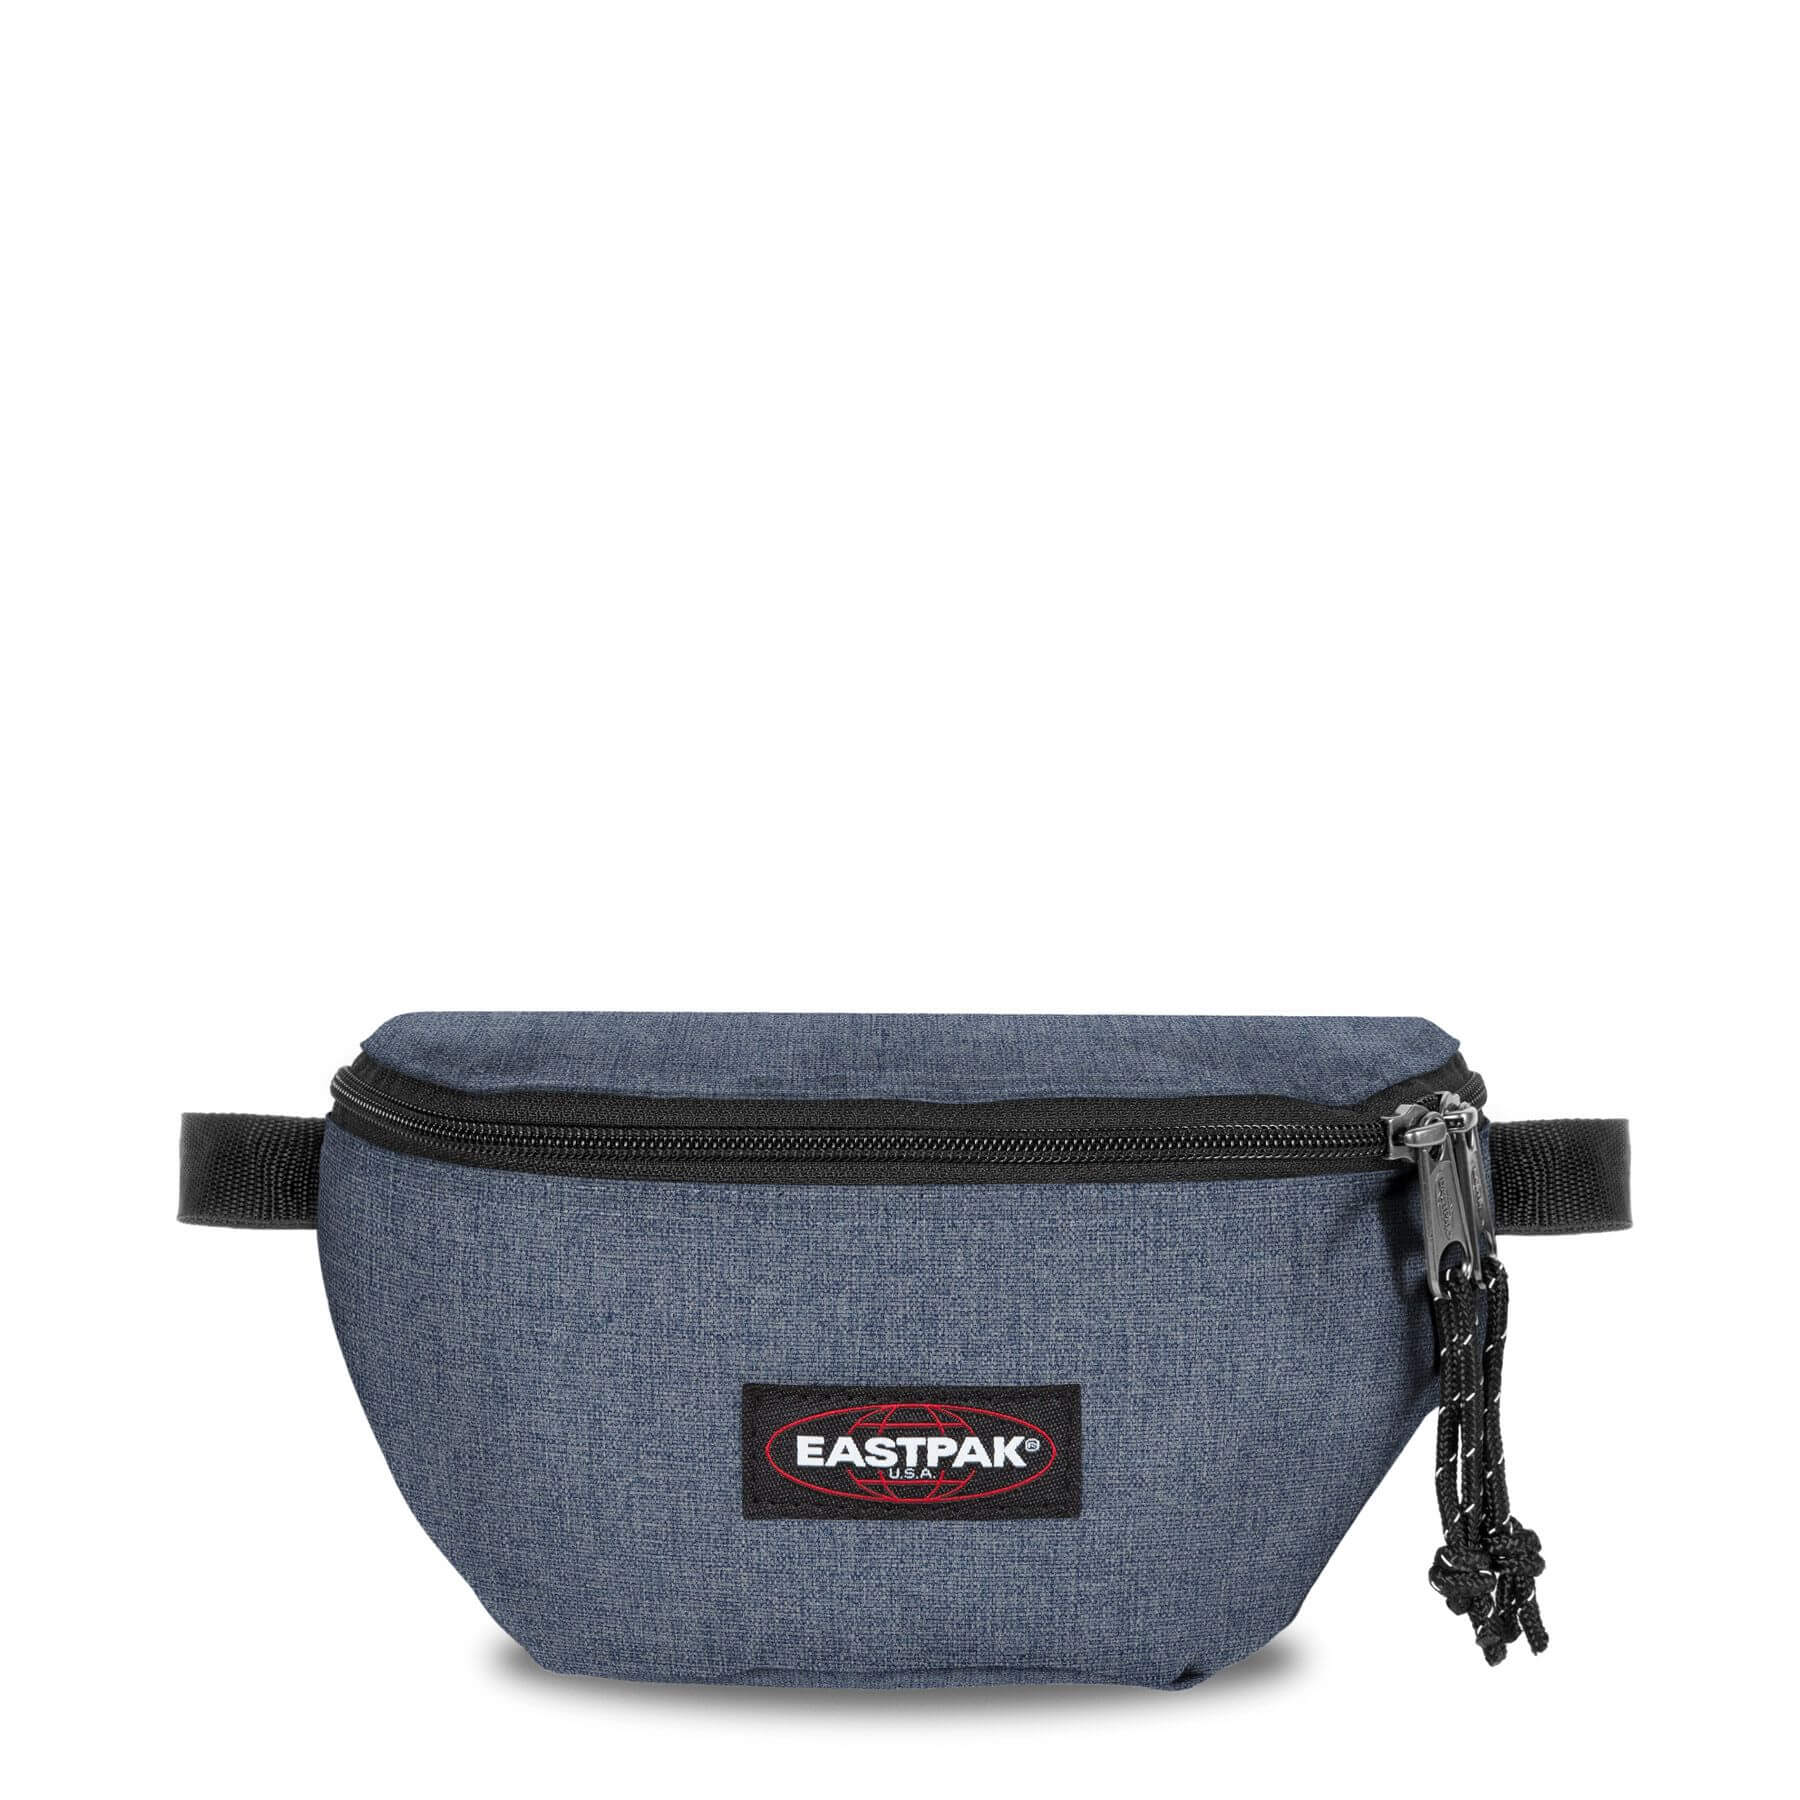 Eastpak Springer Crafty Jeans